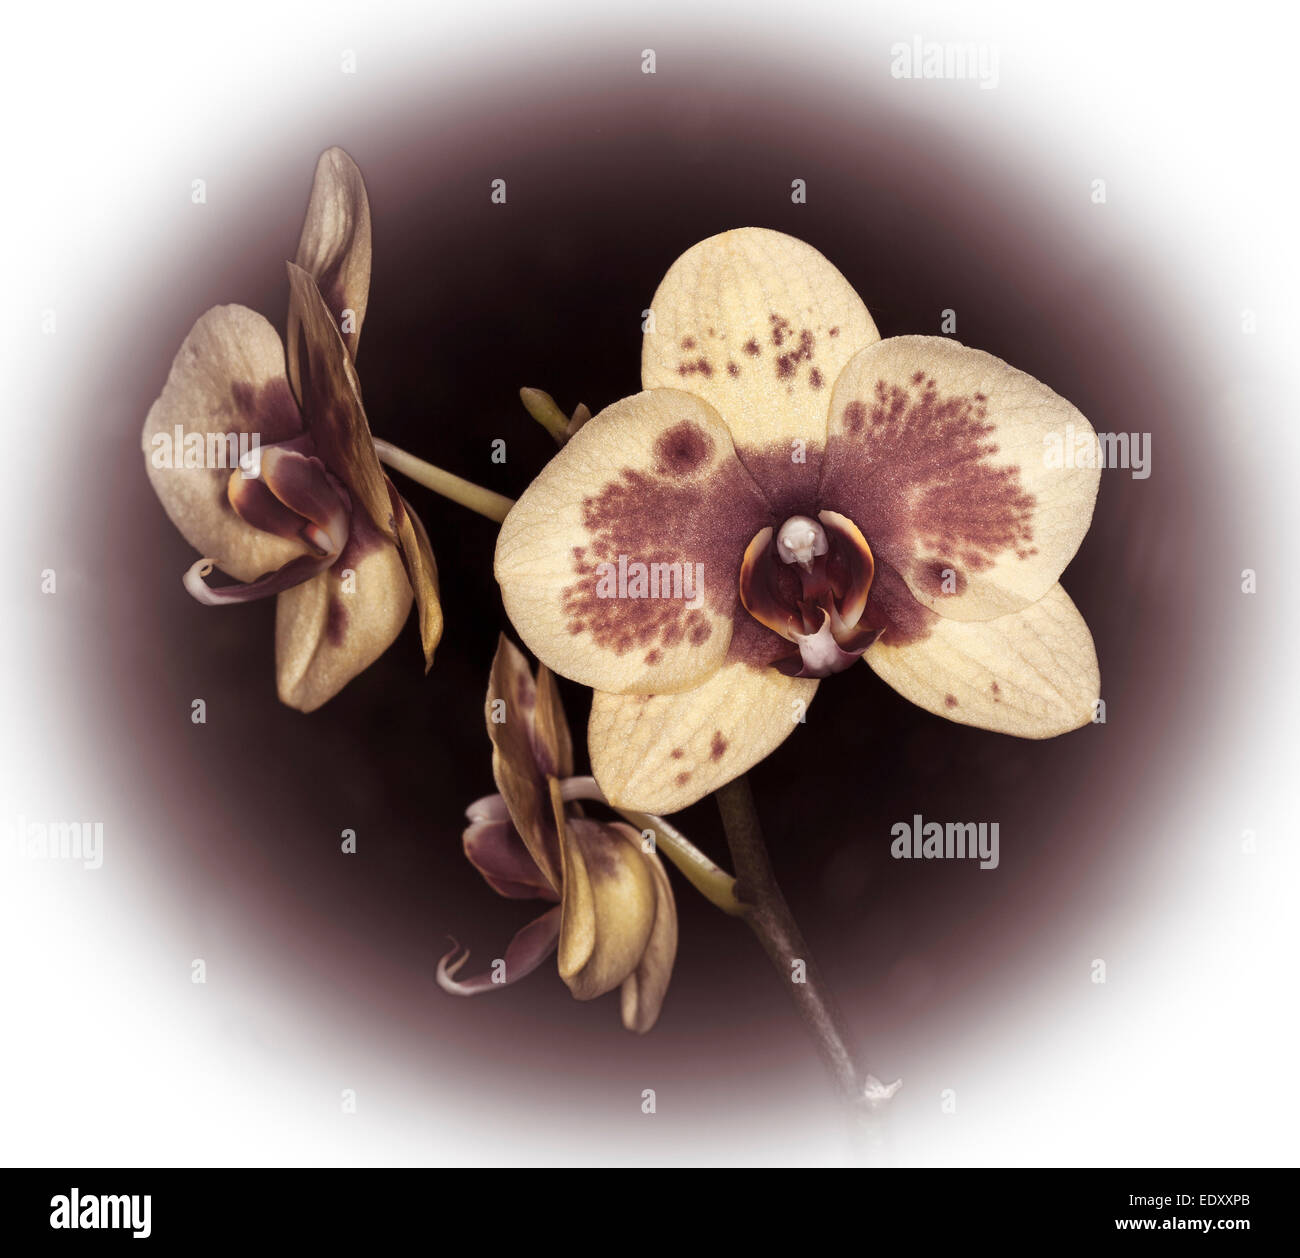 Spectacular flower of Phalaenopsis / Moth orchid in sepia tones of brown and white against dark brown background - Stock Image